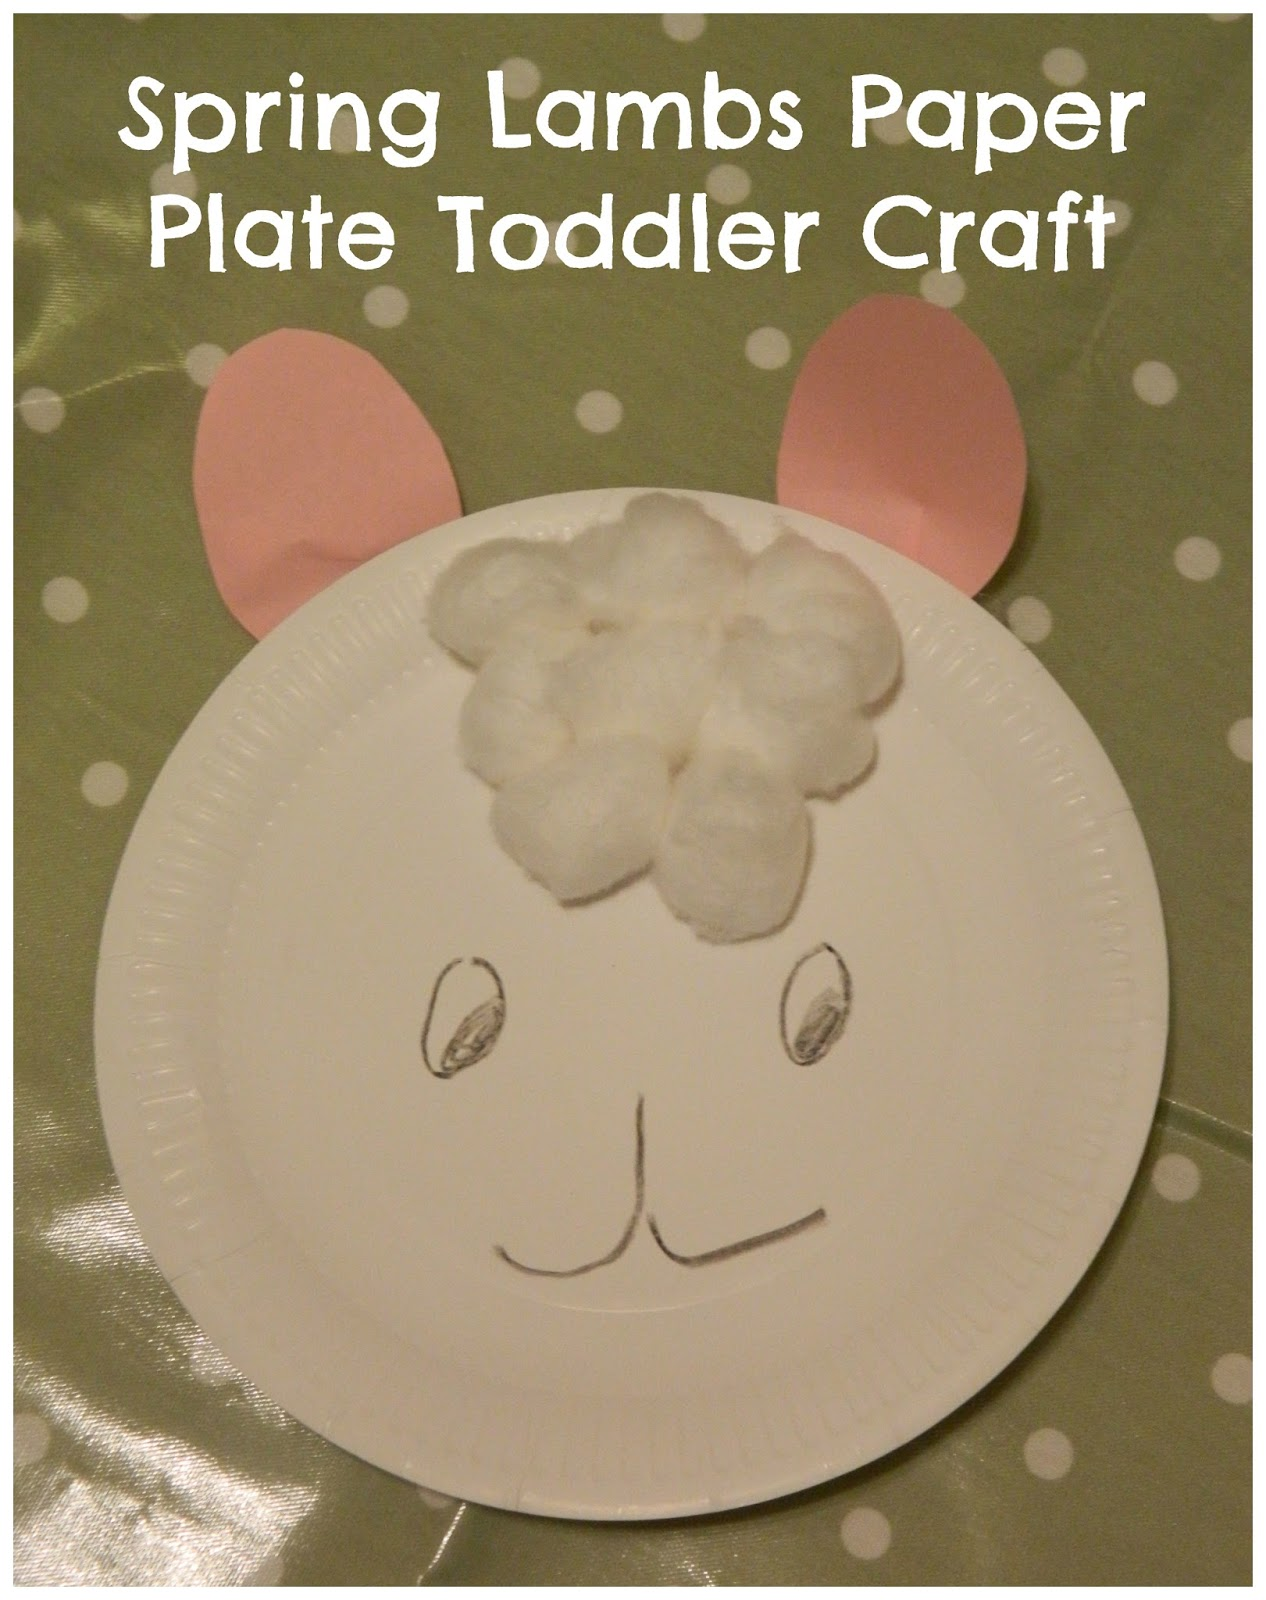 Spring Lambs Toddlers Paper Plate Craft